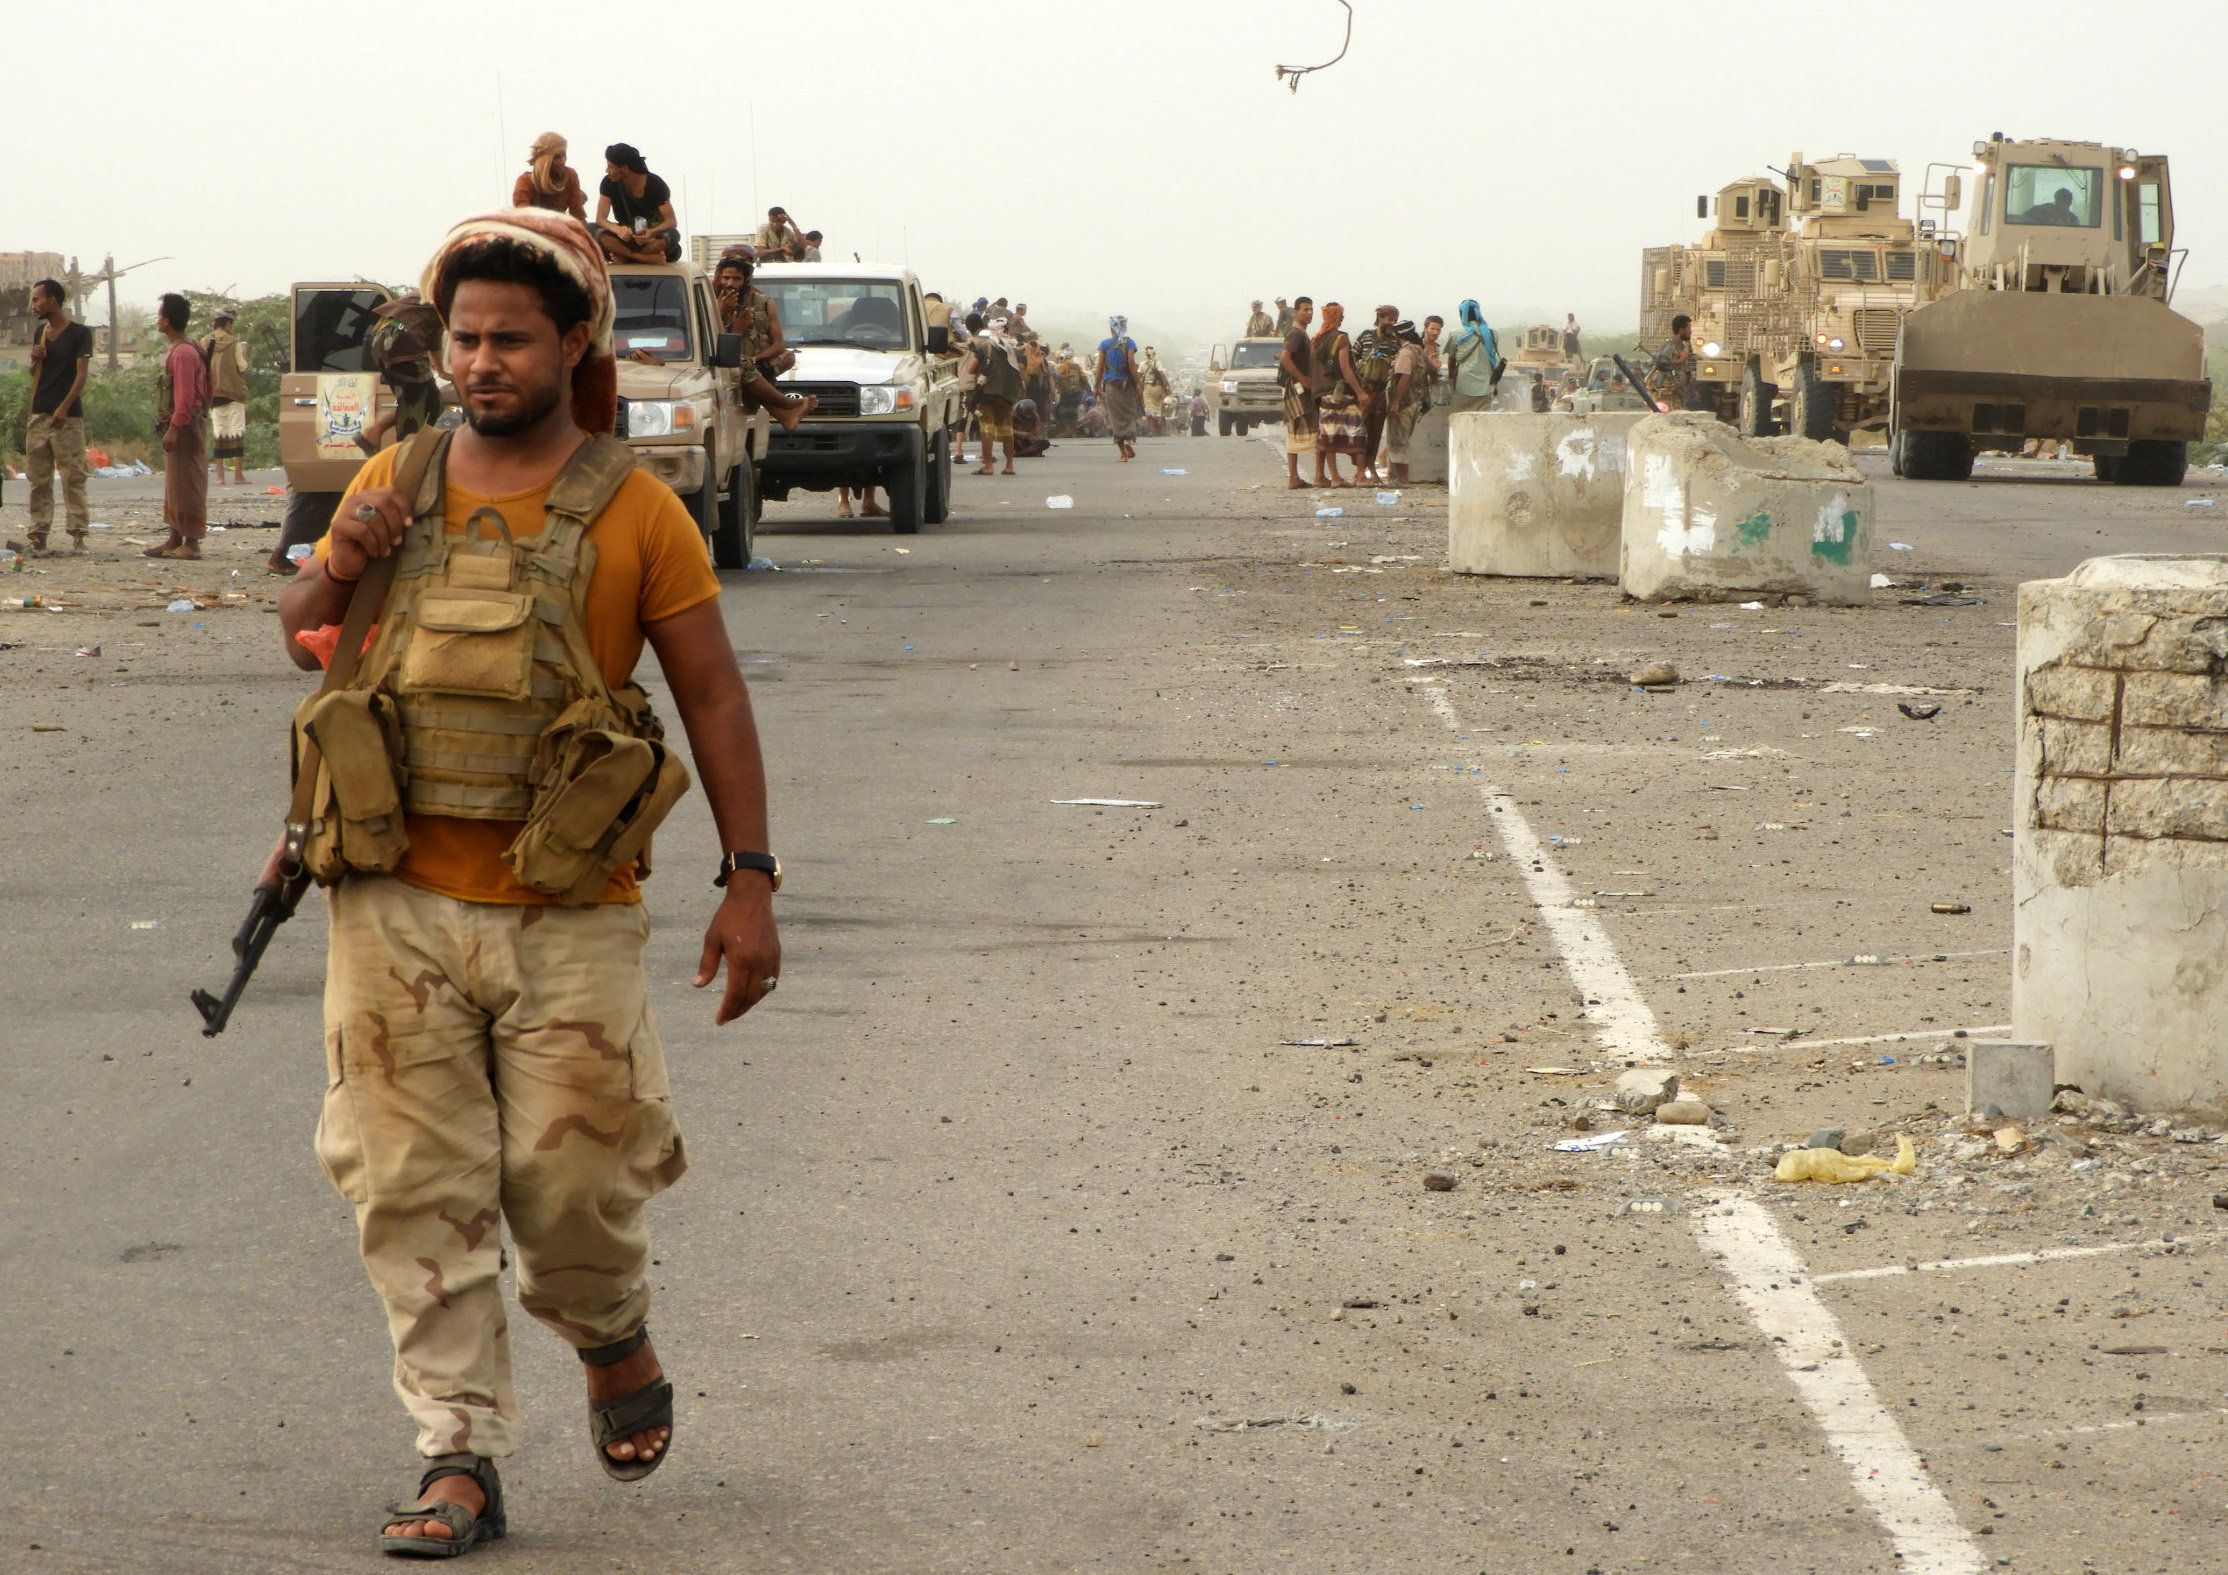 Yemeni pro-government fighters arrive in al-Durayhimi district, about nine kilometres south of Hodeidah international airport on June 13, 2018. - Yemeni forces backed by the Saudi-led coalition launched an offensive on June 13 to retake the rebel-held Red Sea port city of Hodeida, pressing toward the airport south of the city. The port serves as the entry point for 70 percent of the impoverished country's imports as it teeters on the brink of famine. (Photo by NABIL HASSAN / AFP)        (Photo credit should read NABIL HASSAN/AFP/Getty Images)